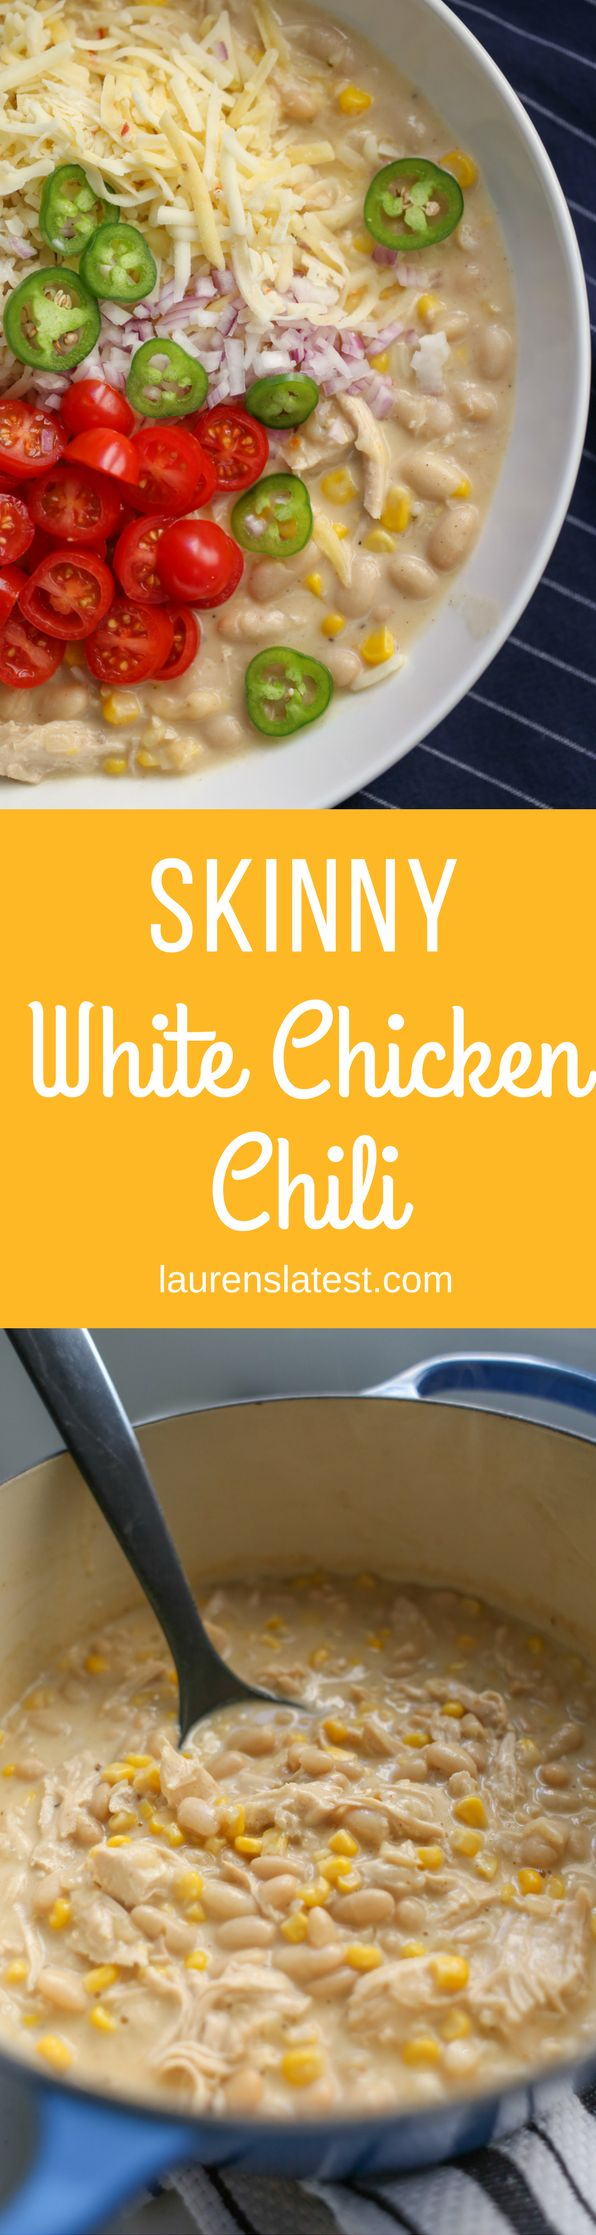 Skinny White Chicken Chili!! This recipe will wiggle its way onto your menu because that's how AMAZING it is!! And ready in 20 minutes.